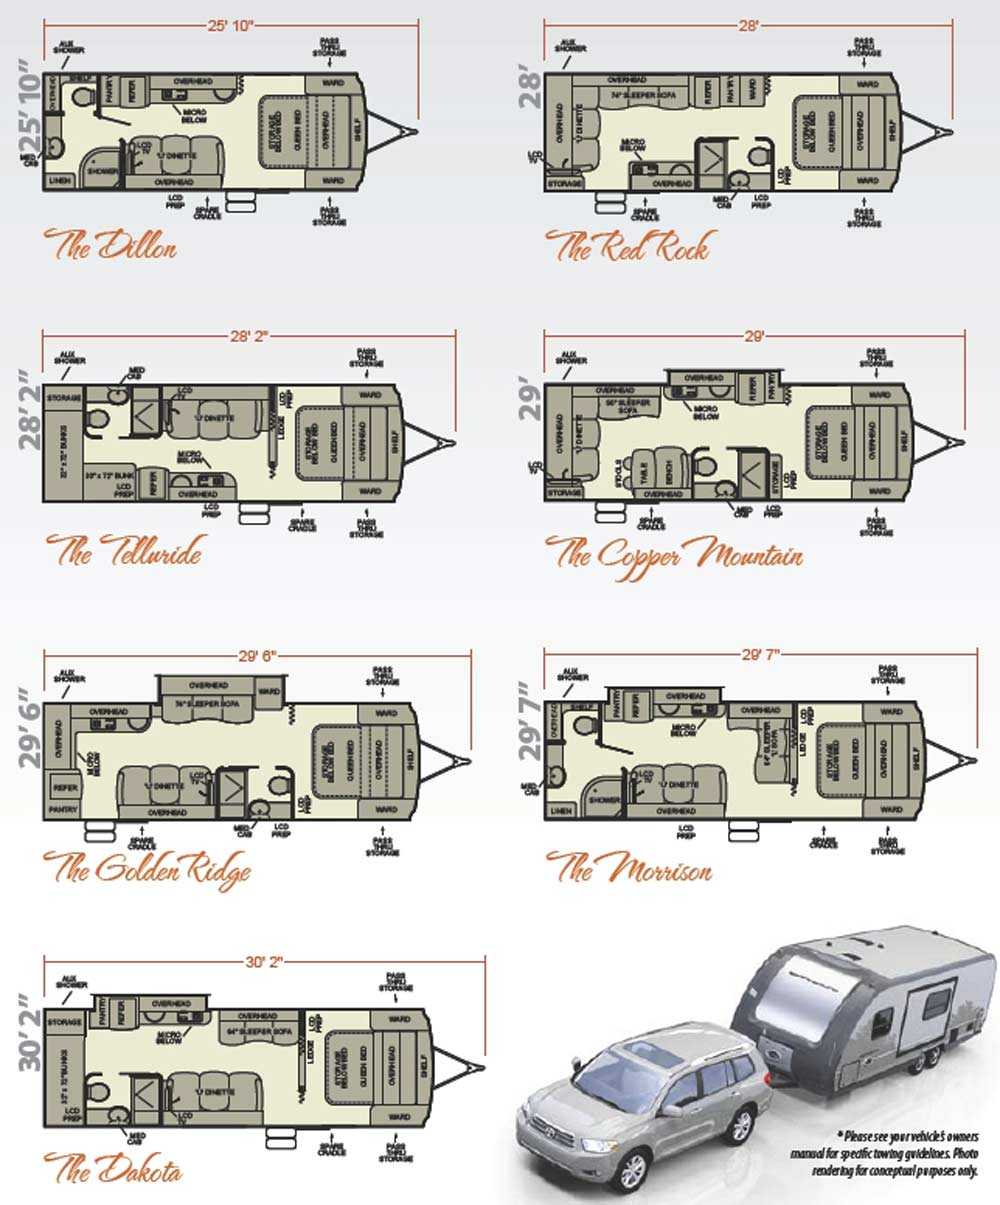 Travel trailer floorplans find house plans for Rv cottage plans